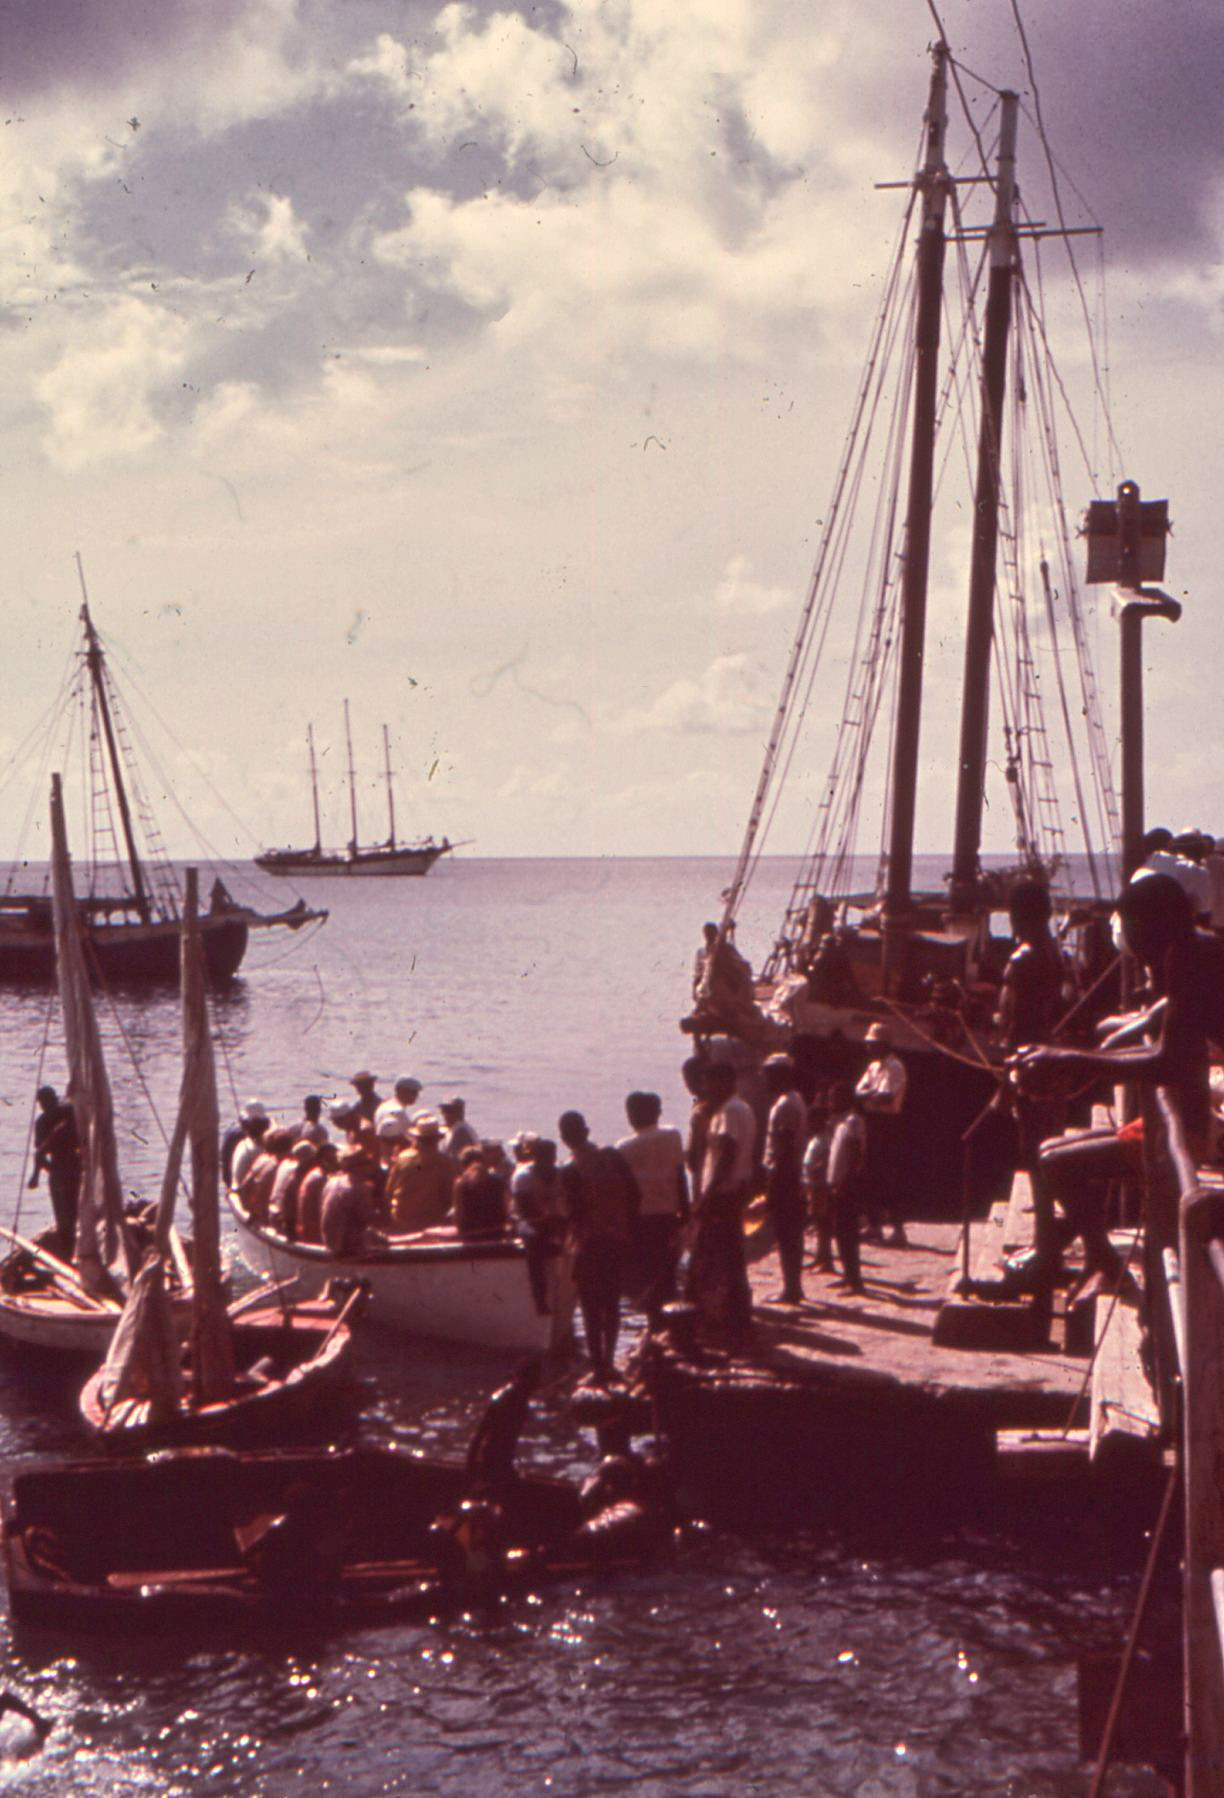 West Indies, 1970. The barquentine Flying Cloud (Capt. Marsh Gabriel) bobs at anchor in the background.